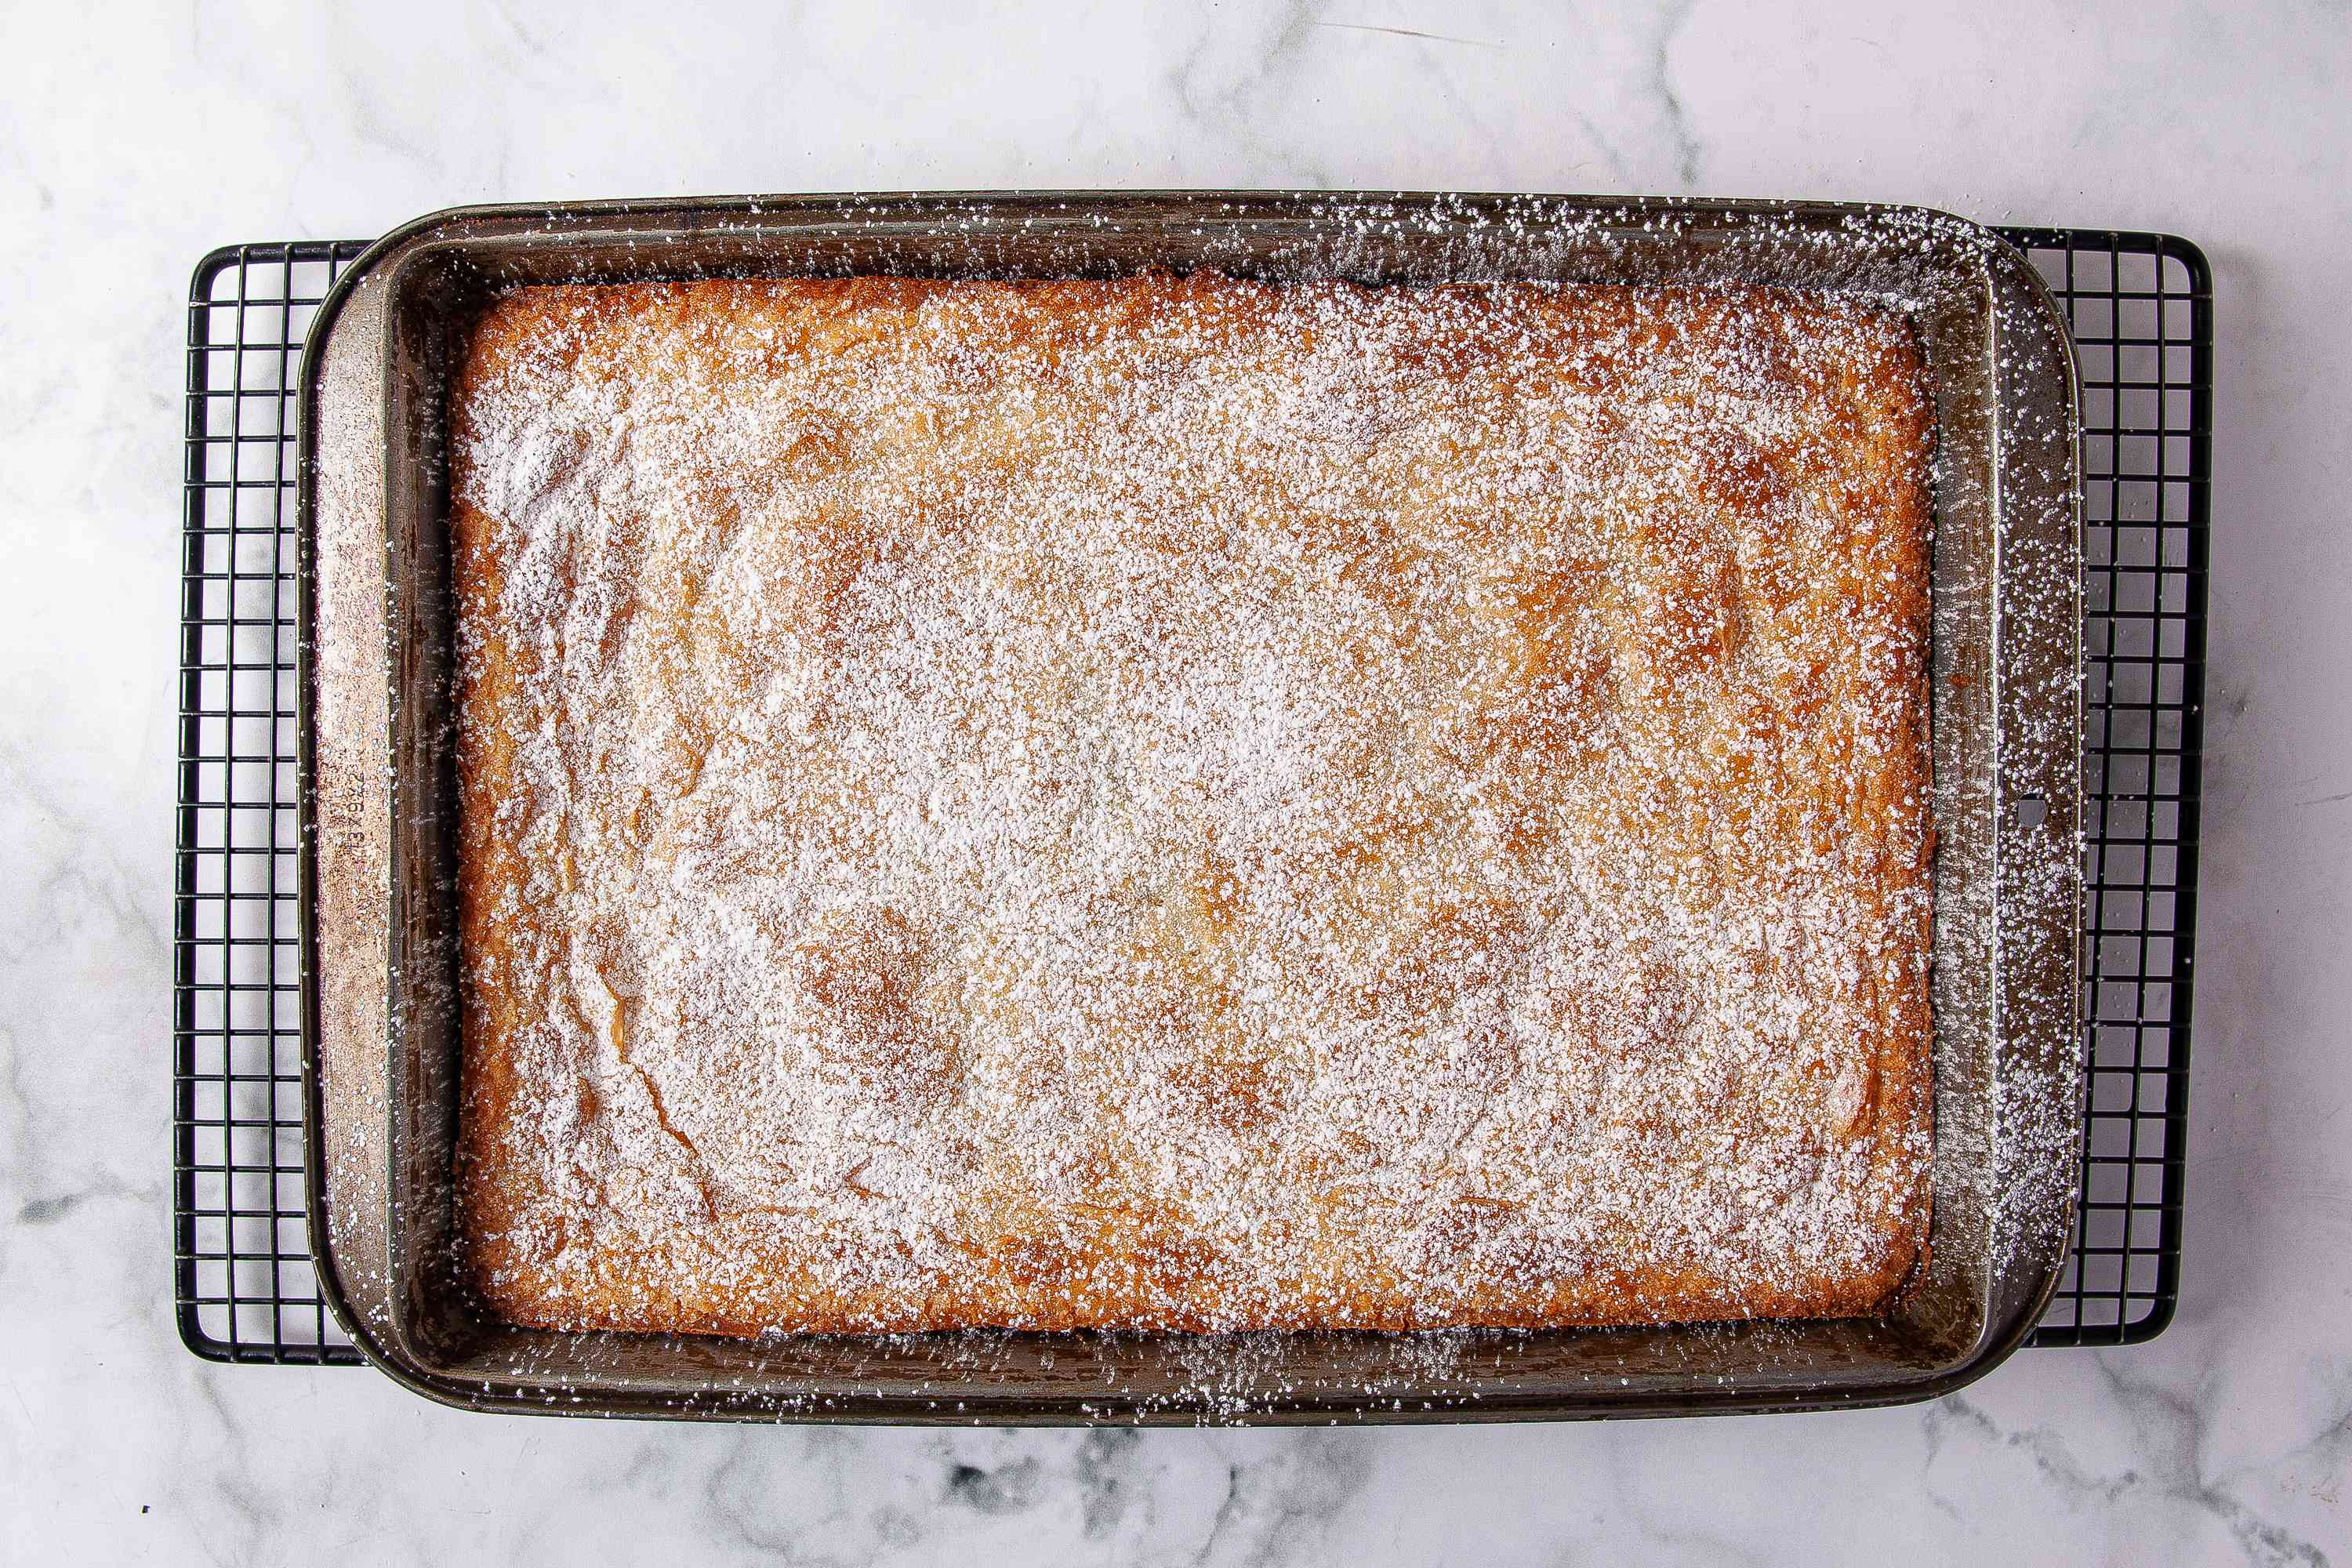 Dust with powdered sugar, cut and serve the delicious Gooey Butter Cake